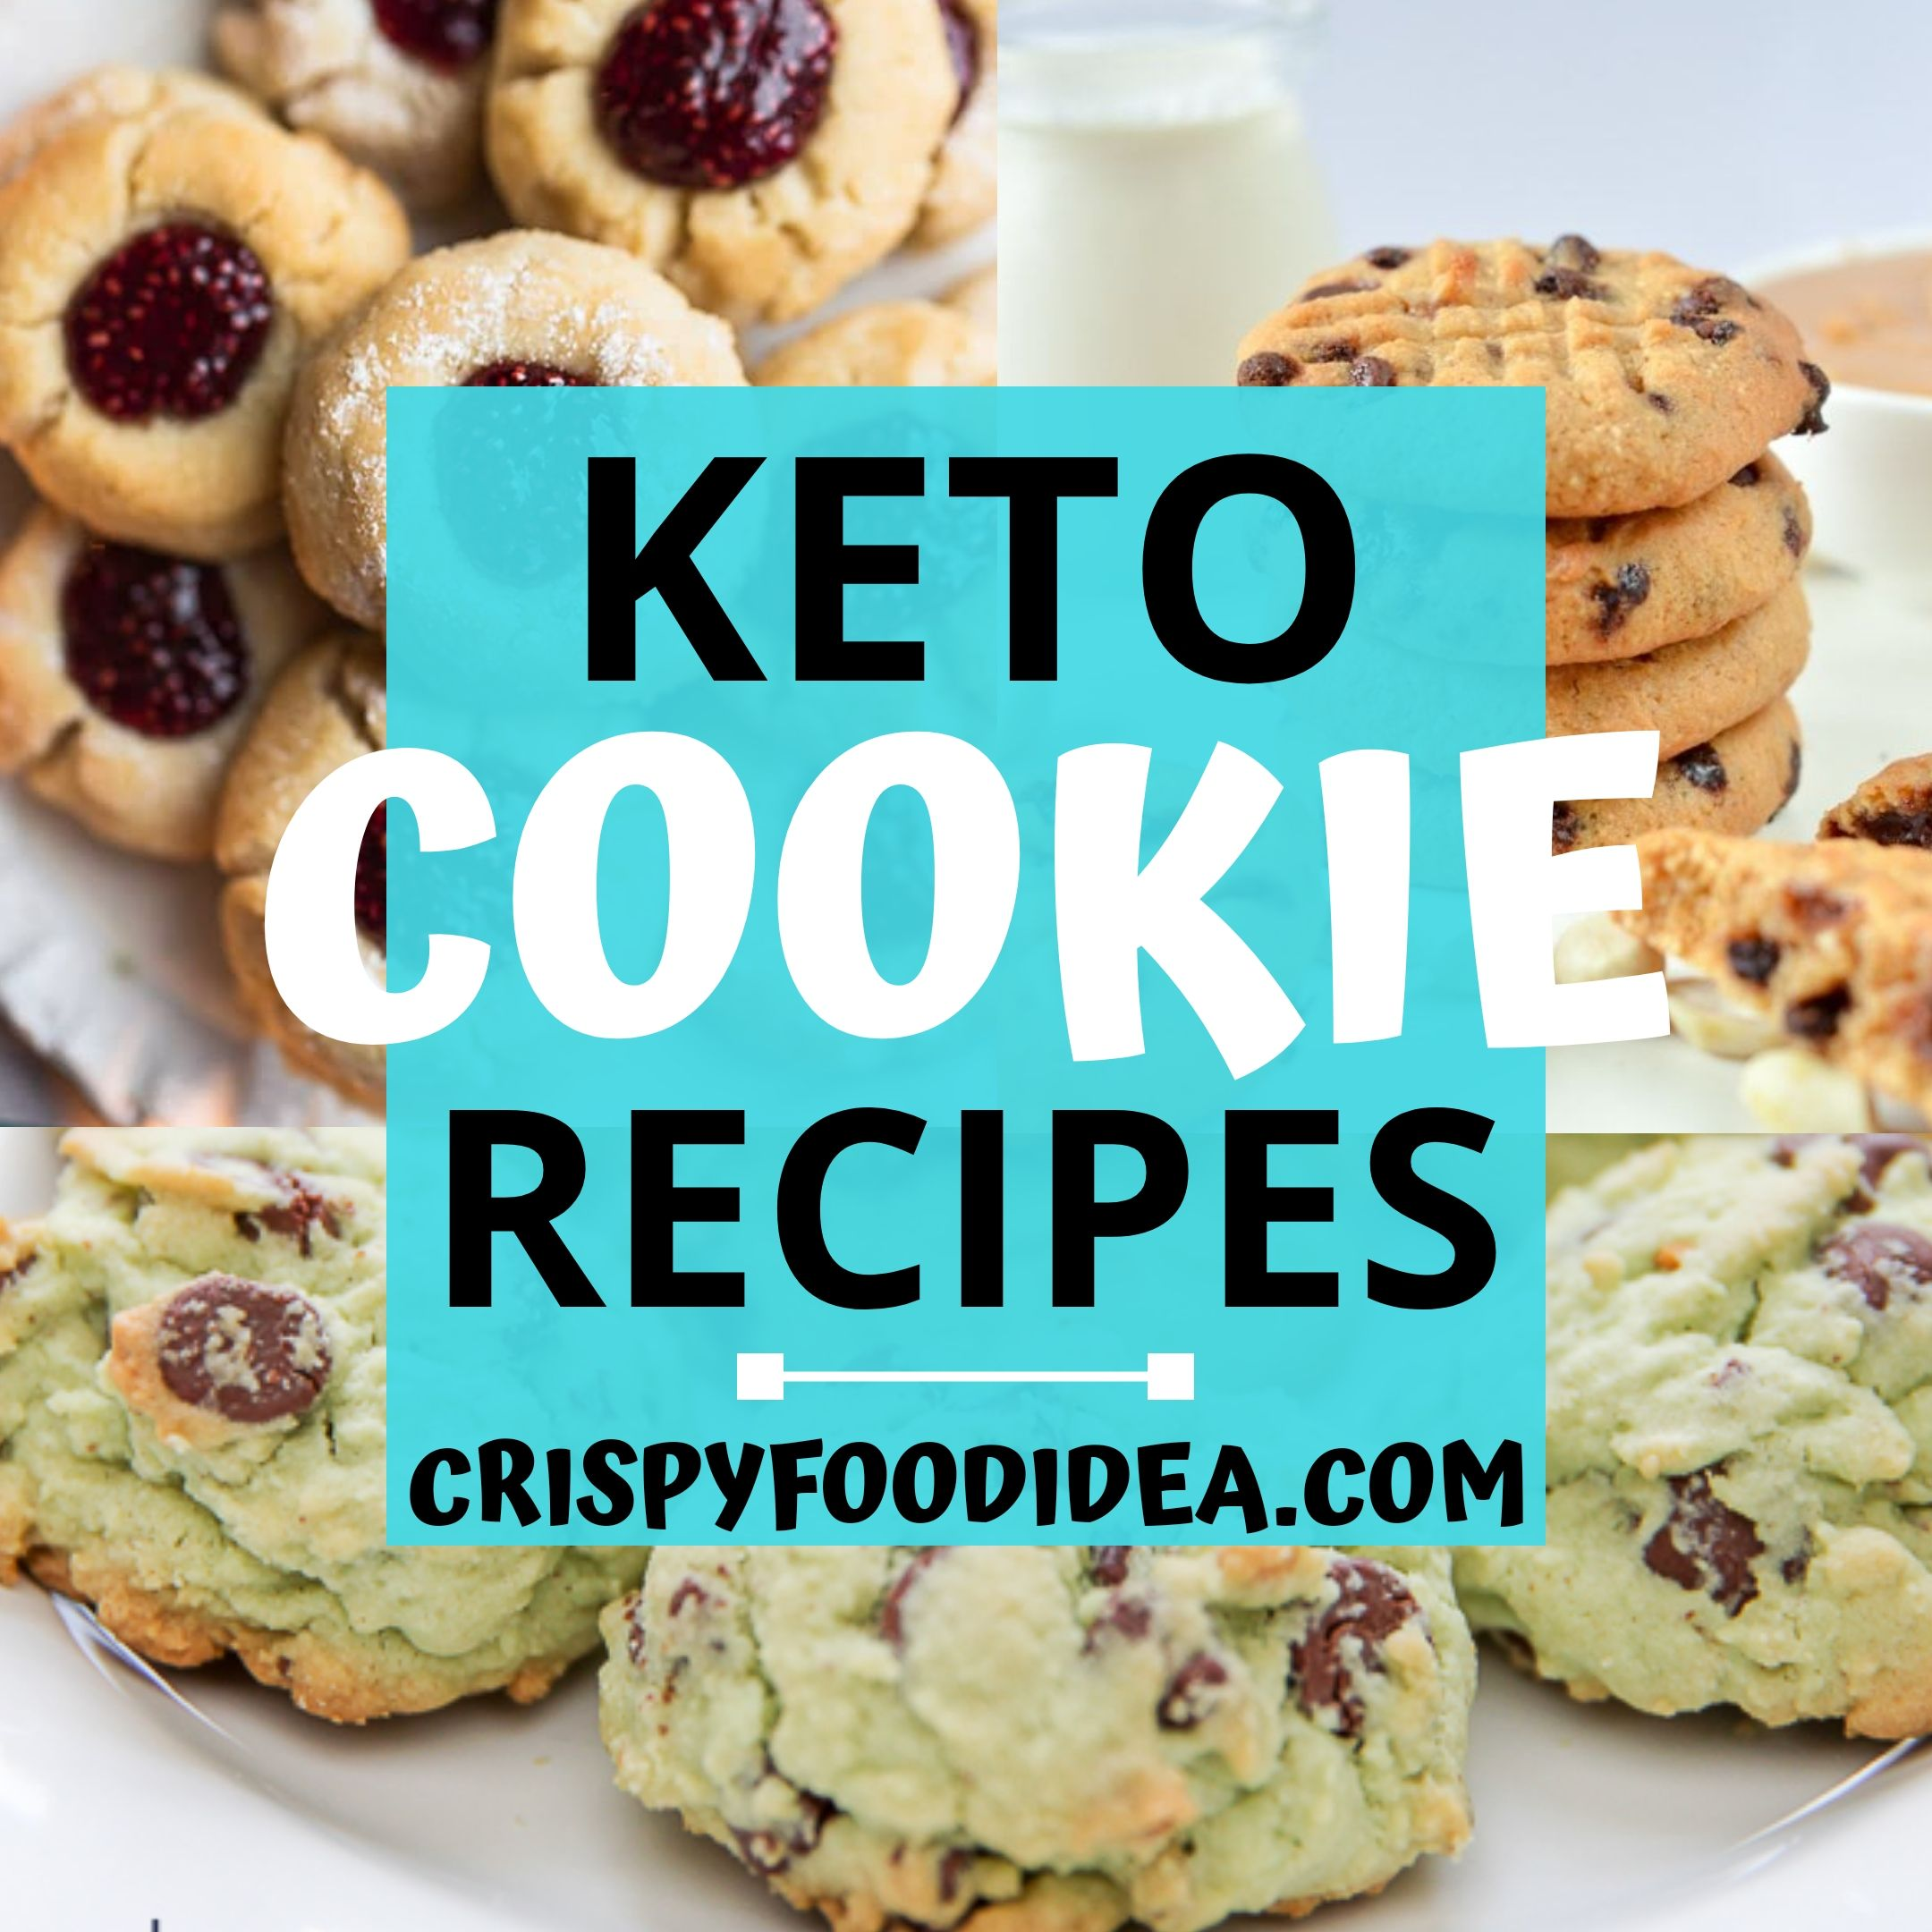 Keto Cookie Recipes